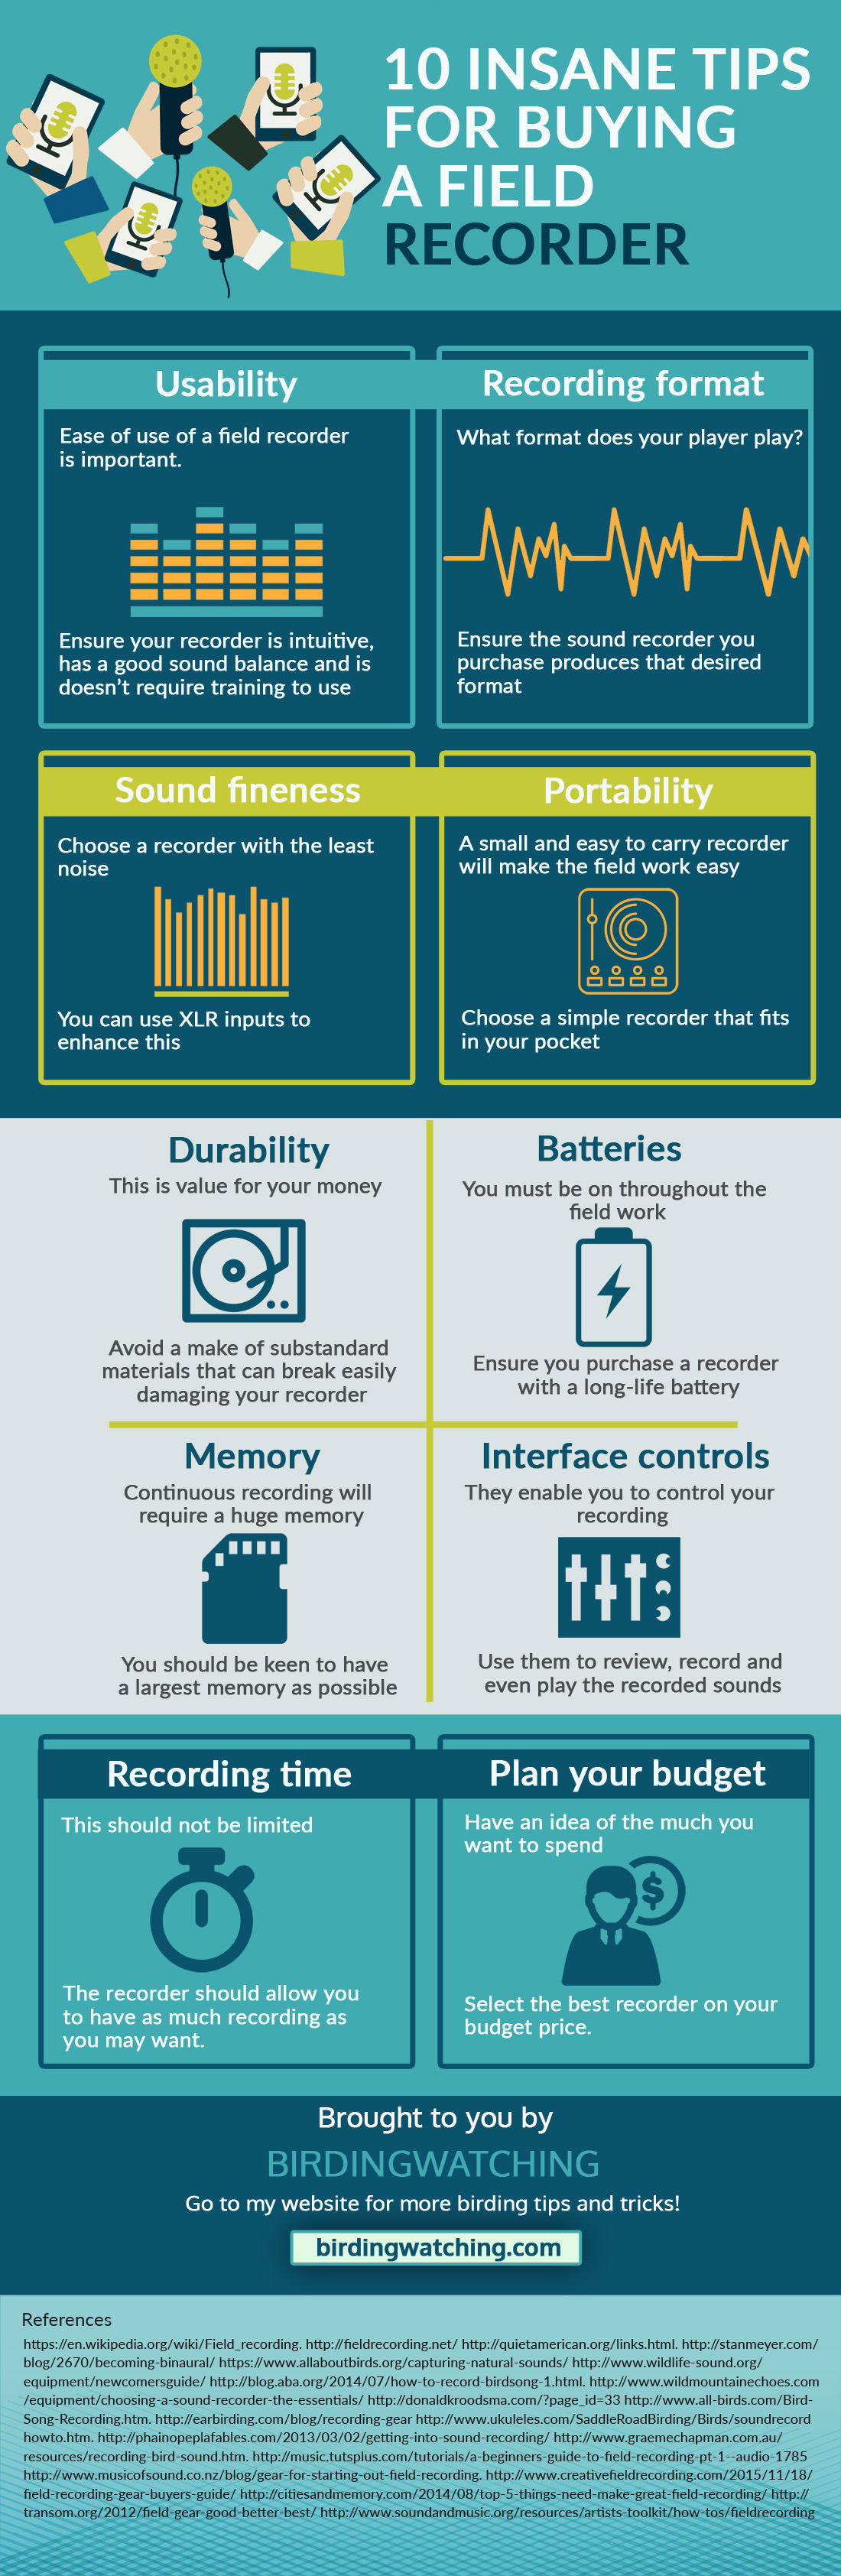 10_field_recorder_tips_infographic_large